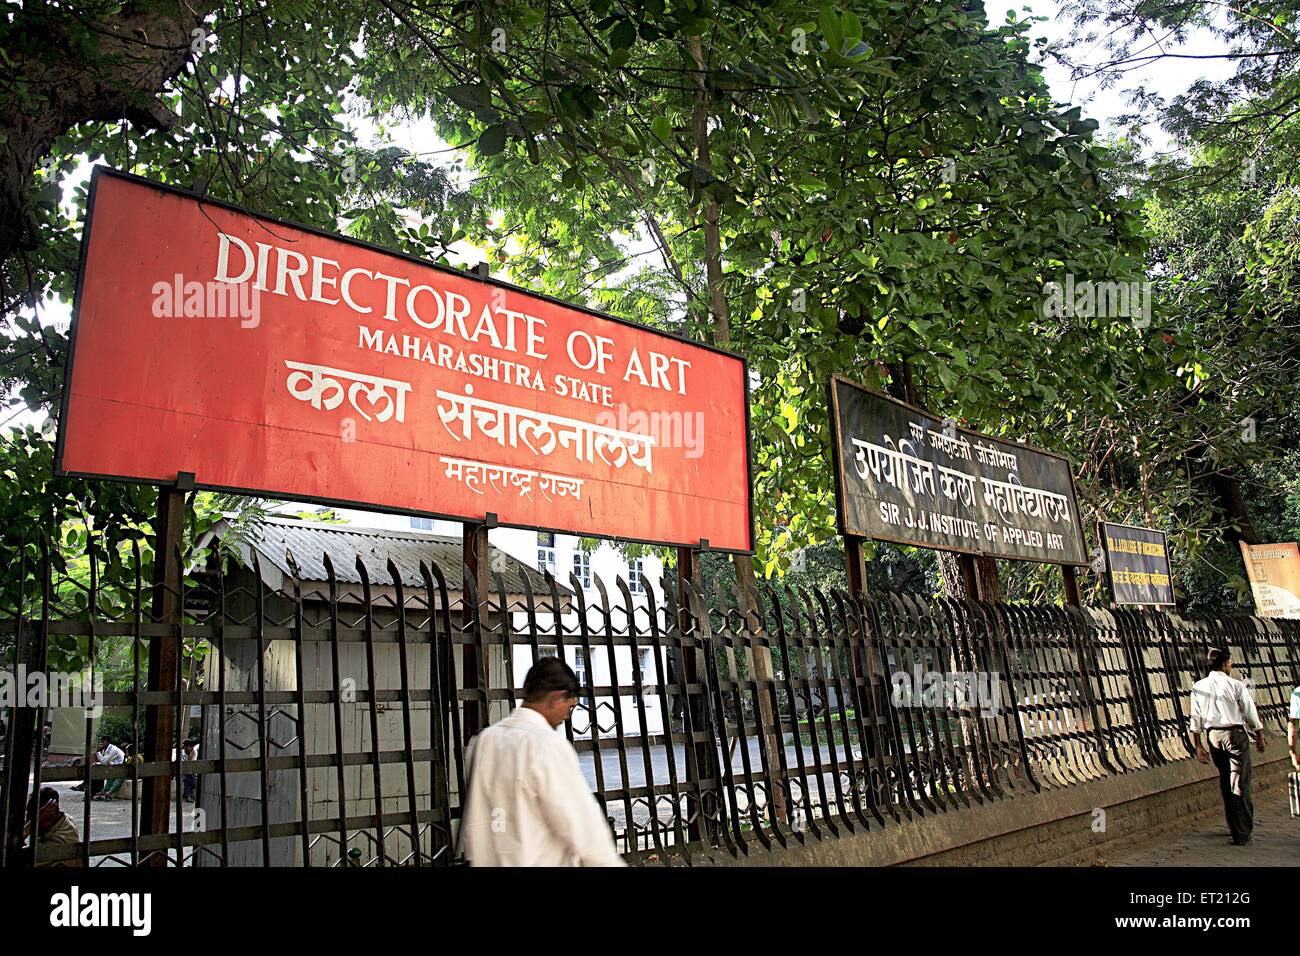 Sir J J School Of Arts And College Of Architecture Dr Dadabhai Stock Photo Alamy